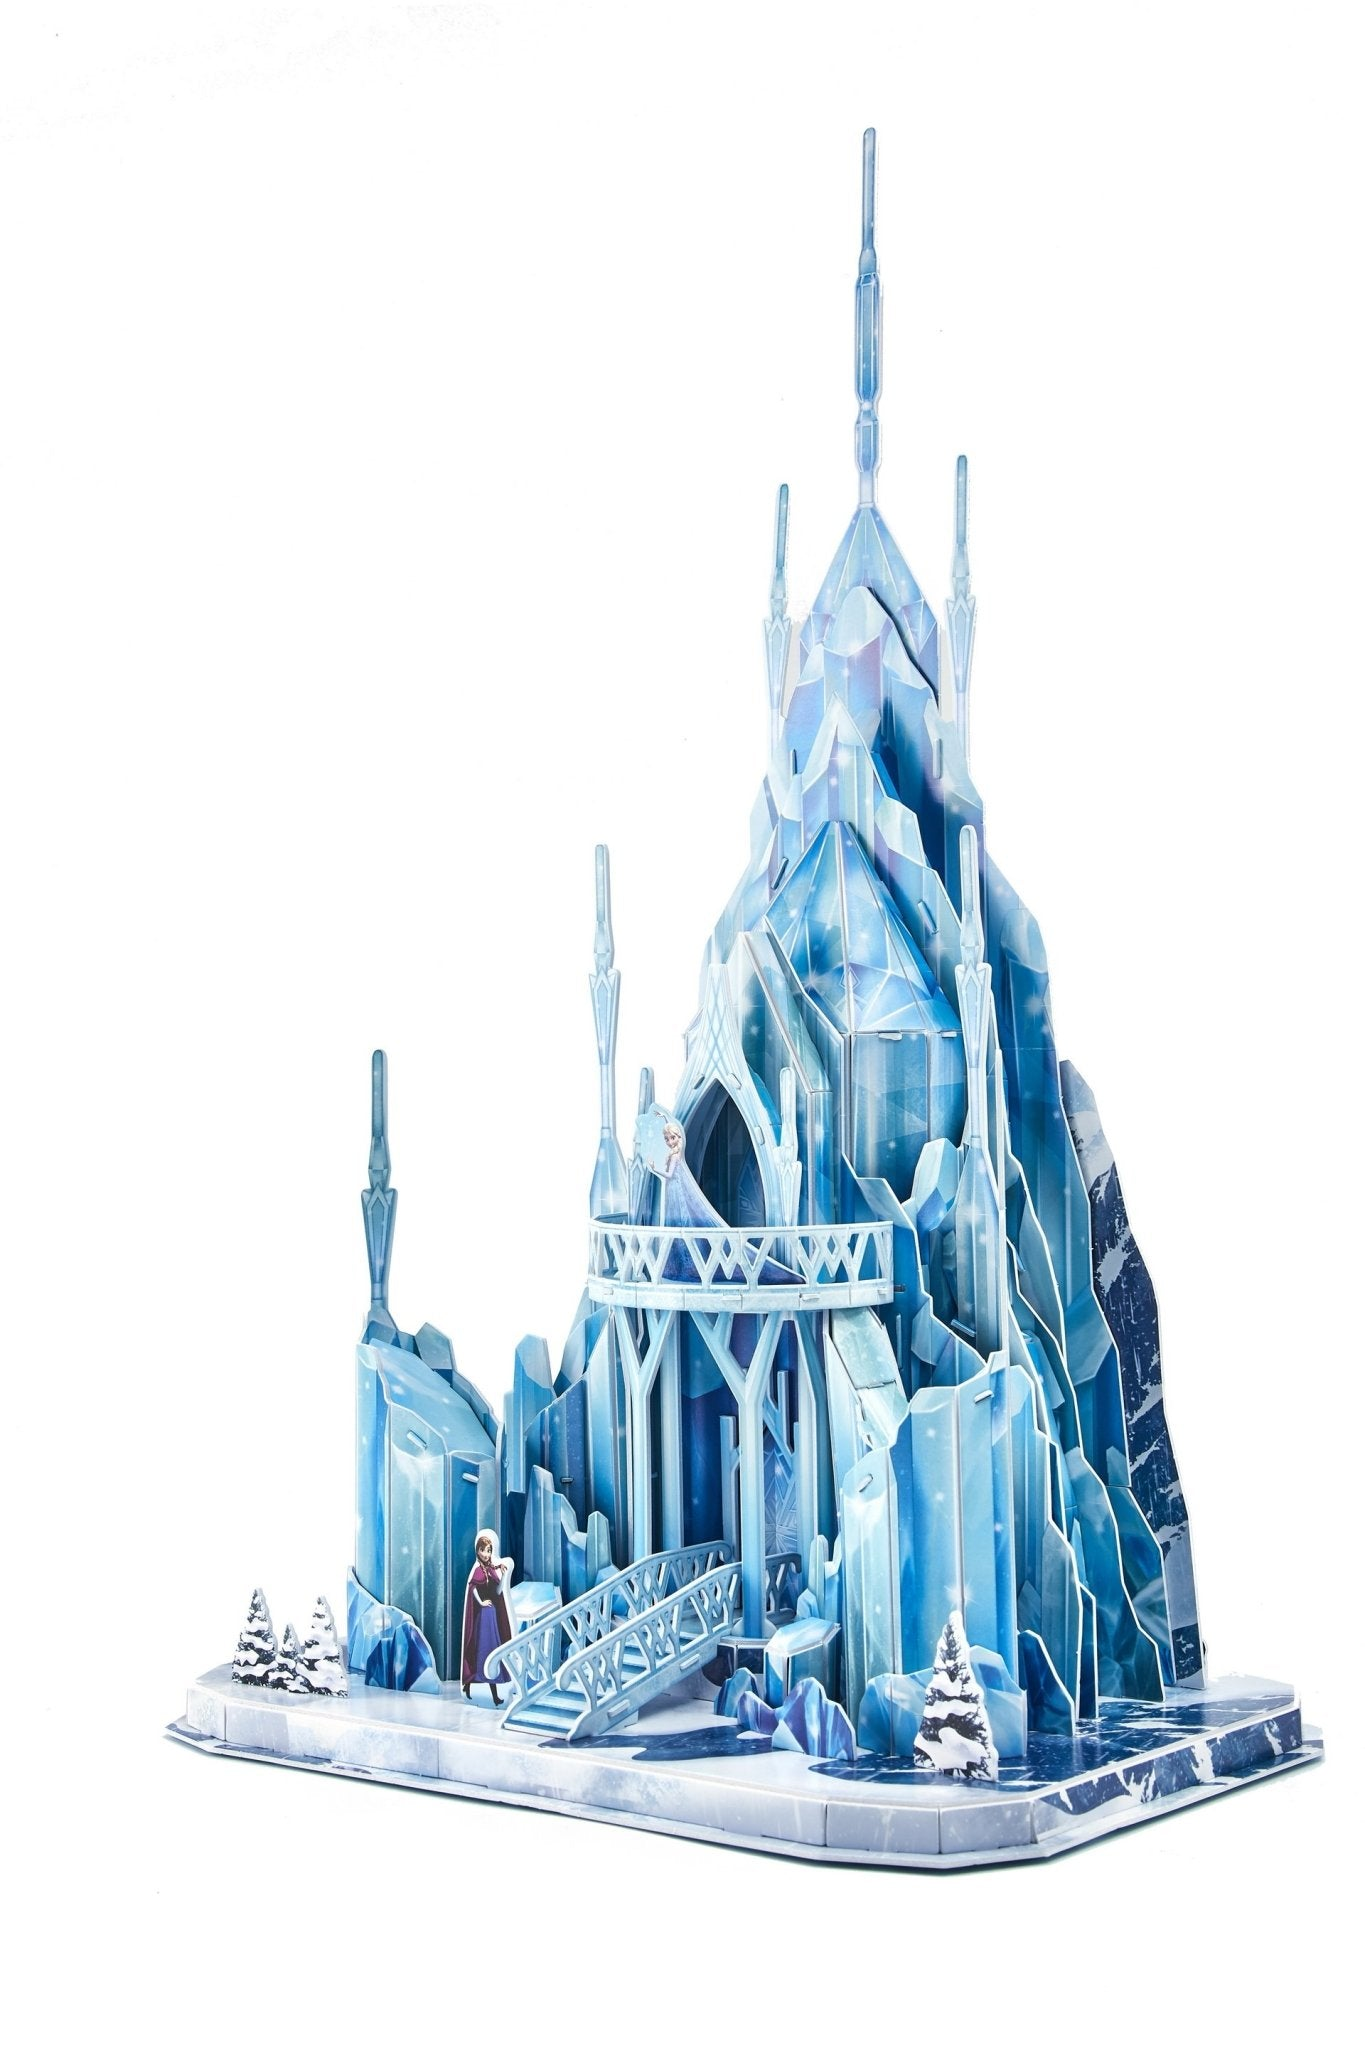 3D Puzzle: Frozen Ice Palace - 4DPuzz - 4DPuzz